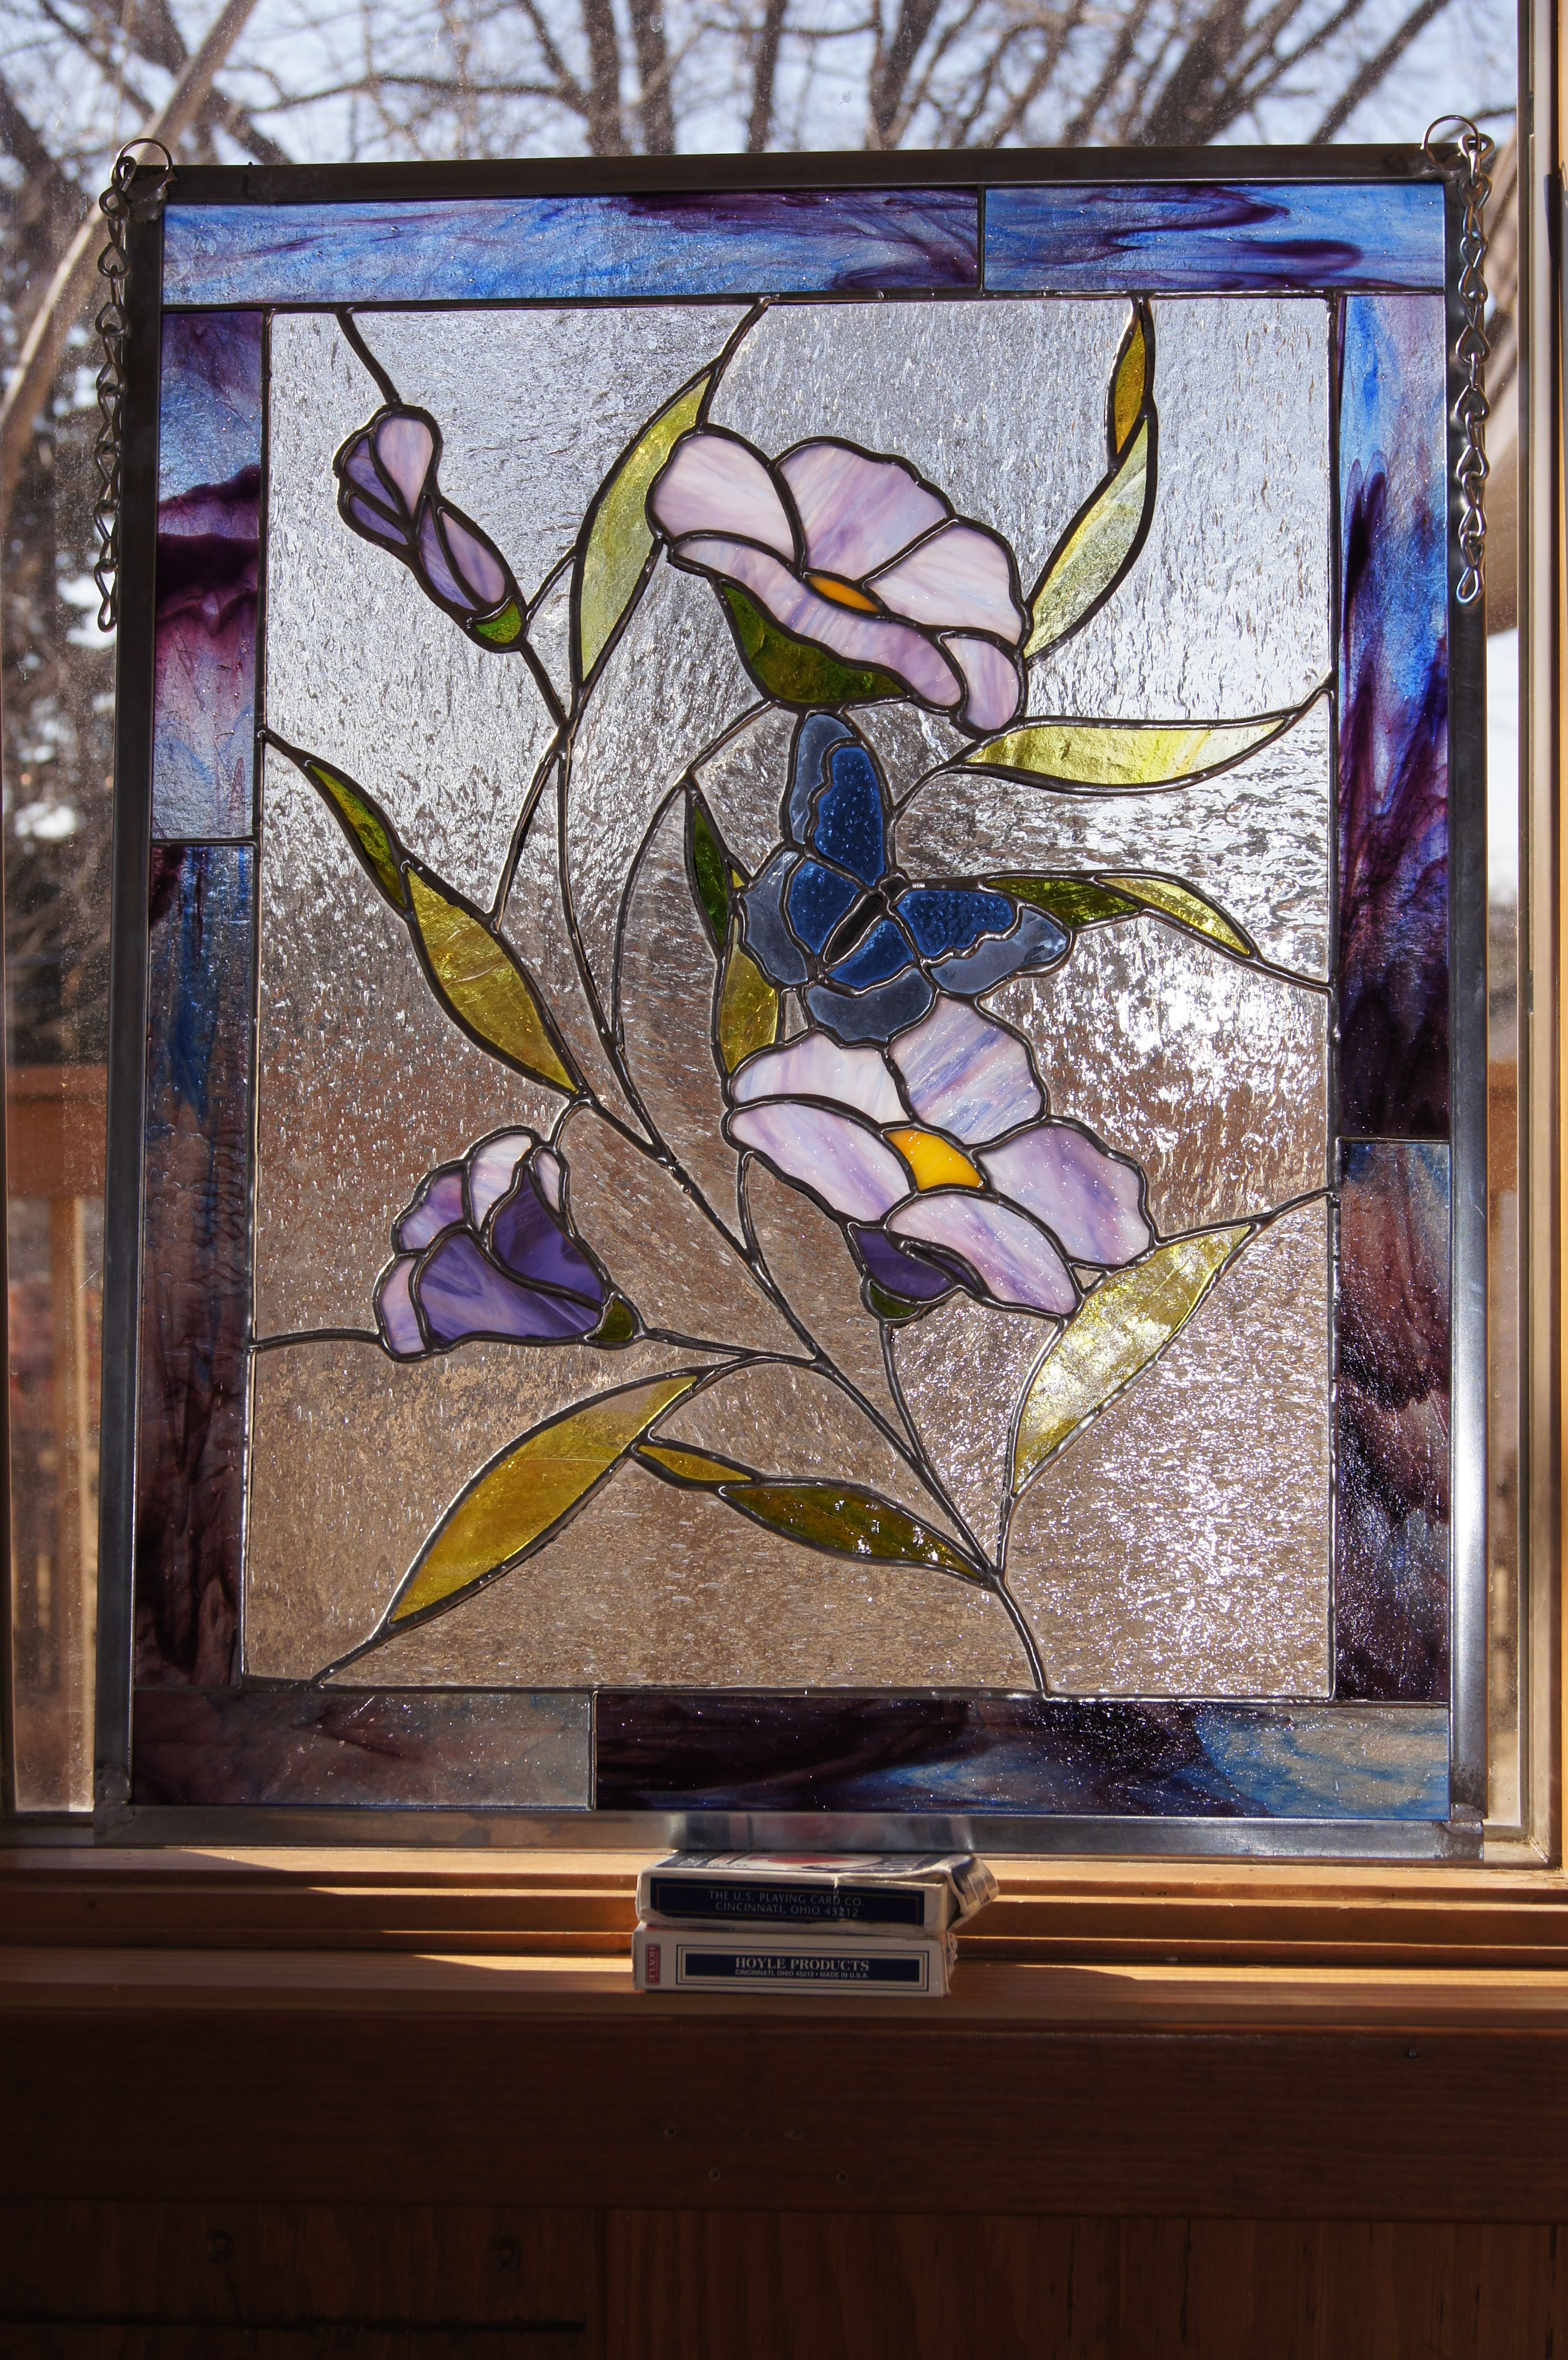 Pin By John Kaczmarek On Floral Stained Glass Stained Glass Flowers Stained Glass Stained Glass Panels